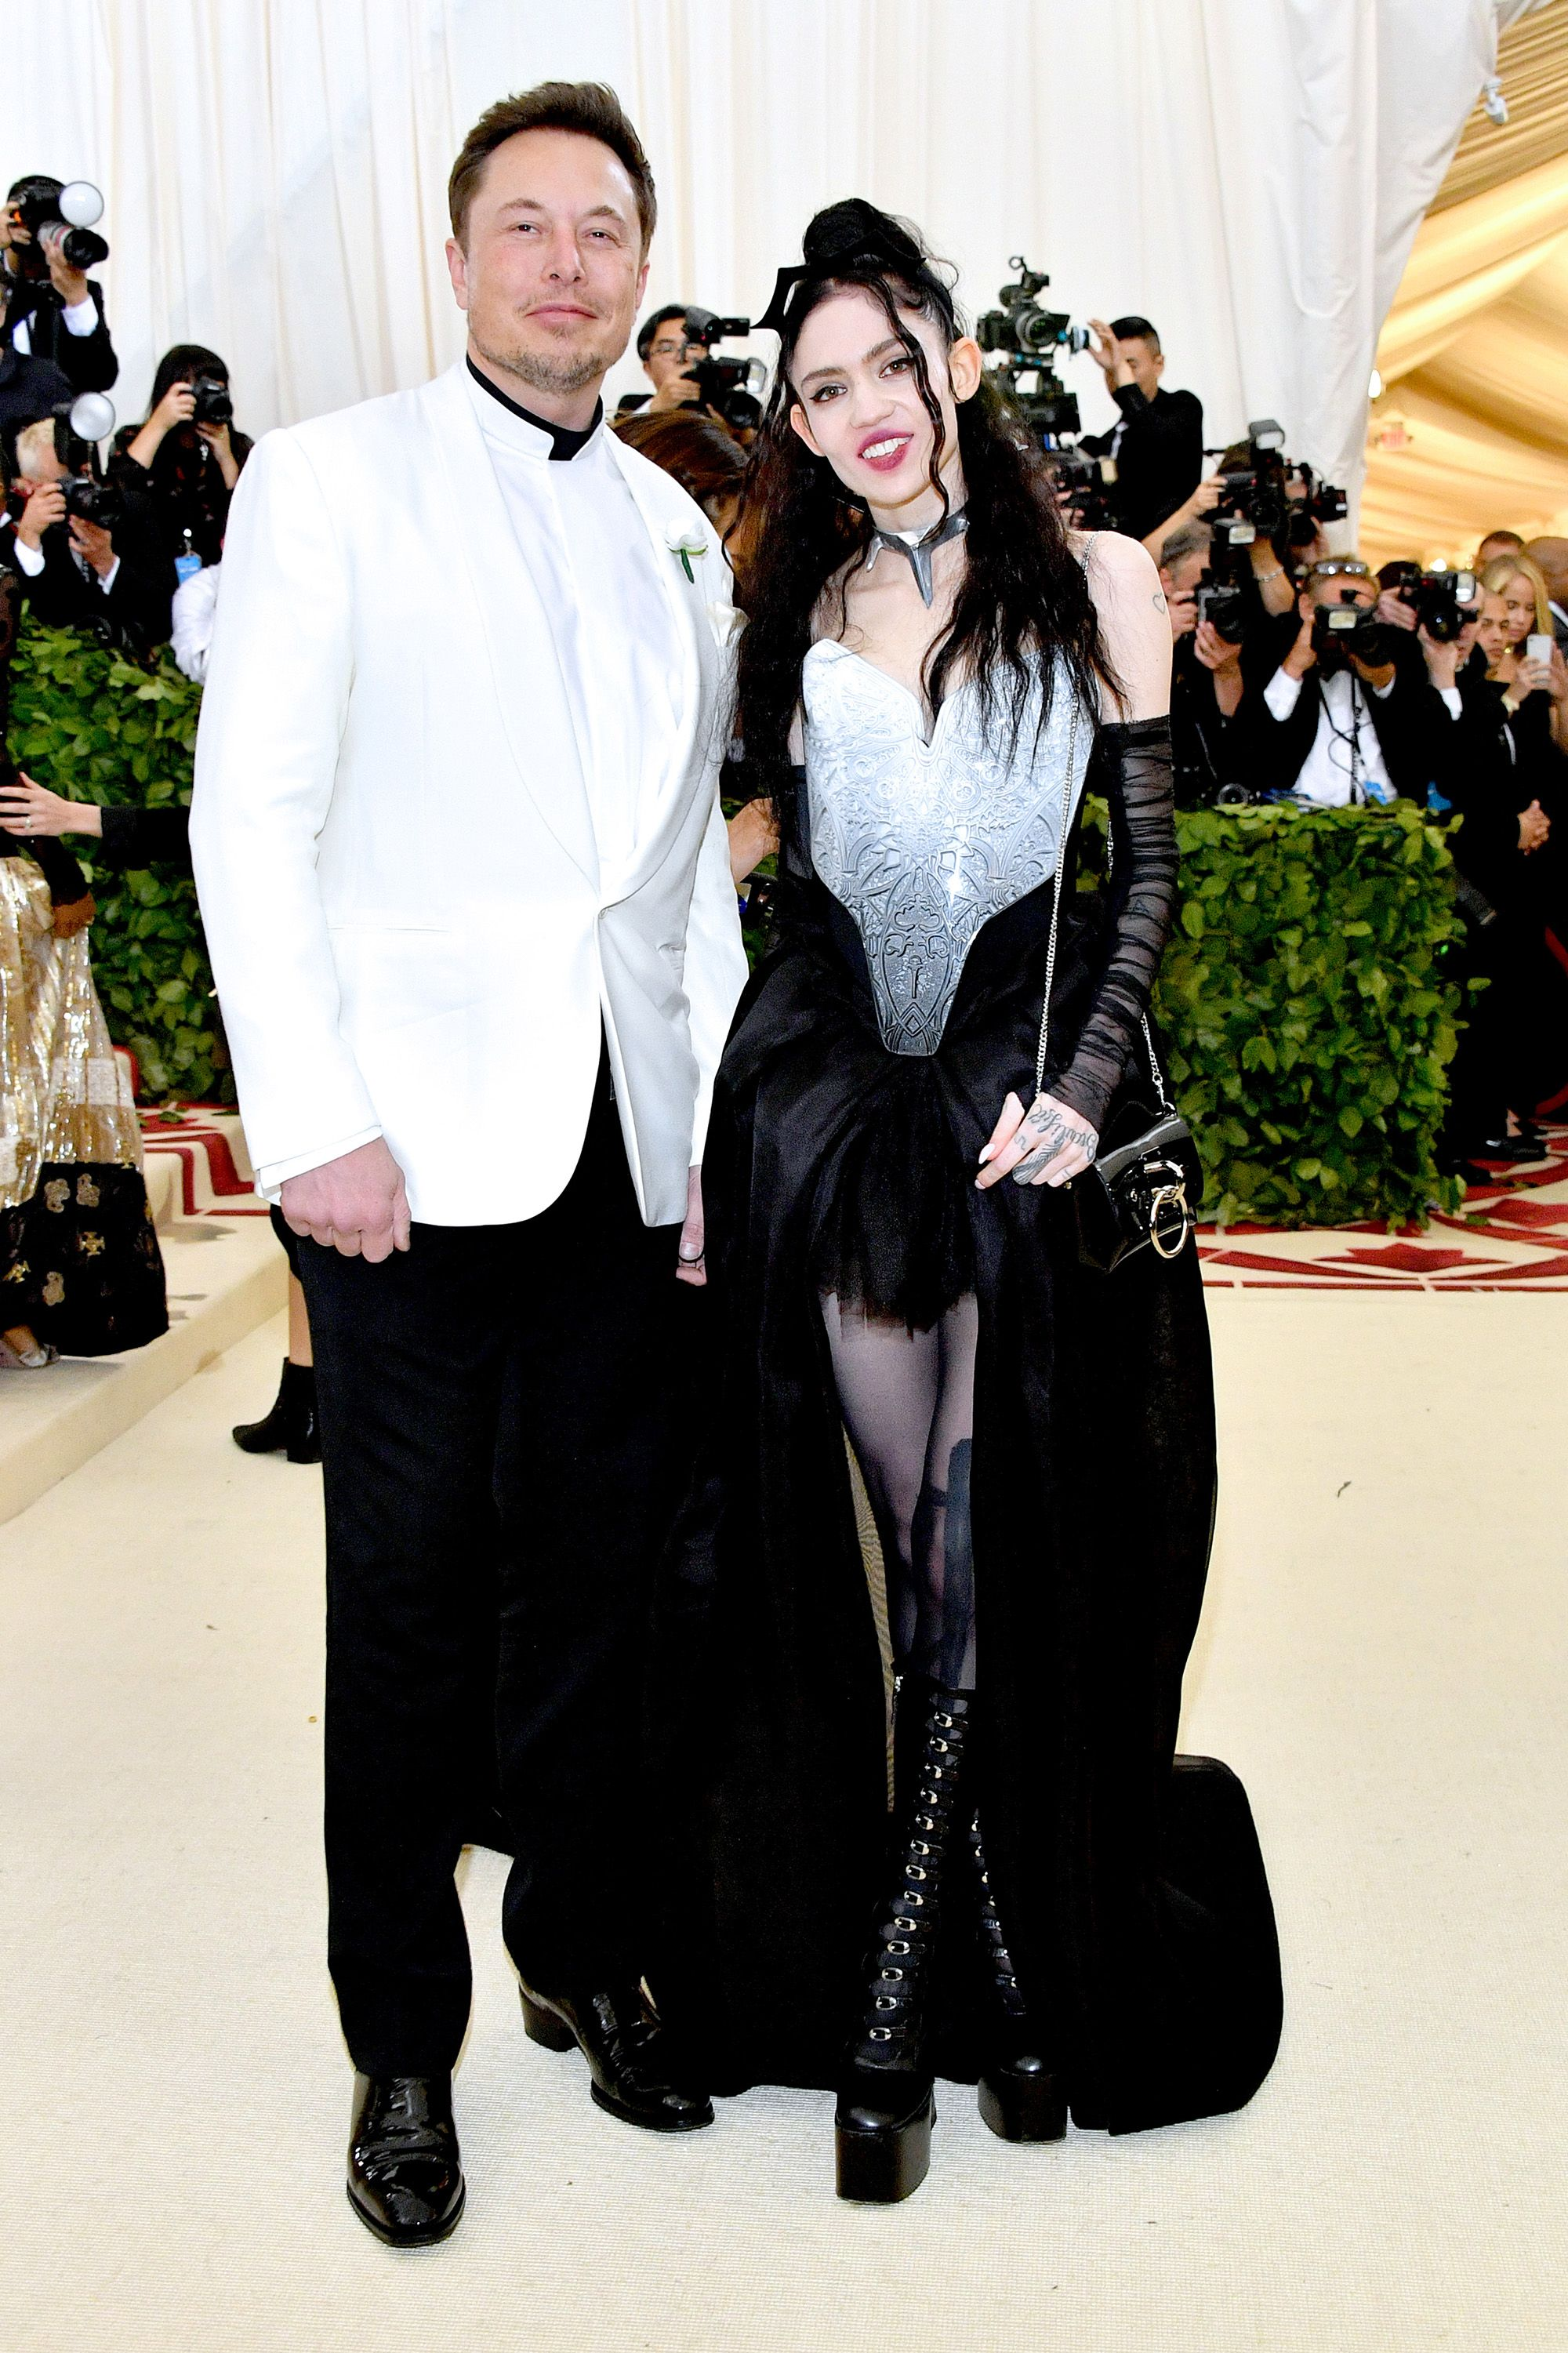 Who is grimes dating